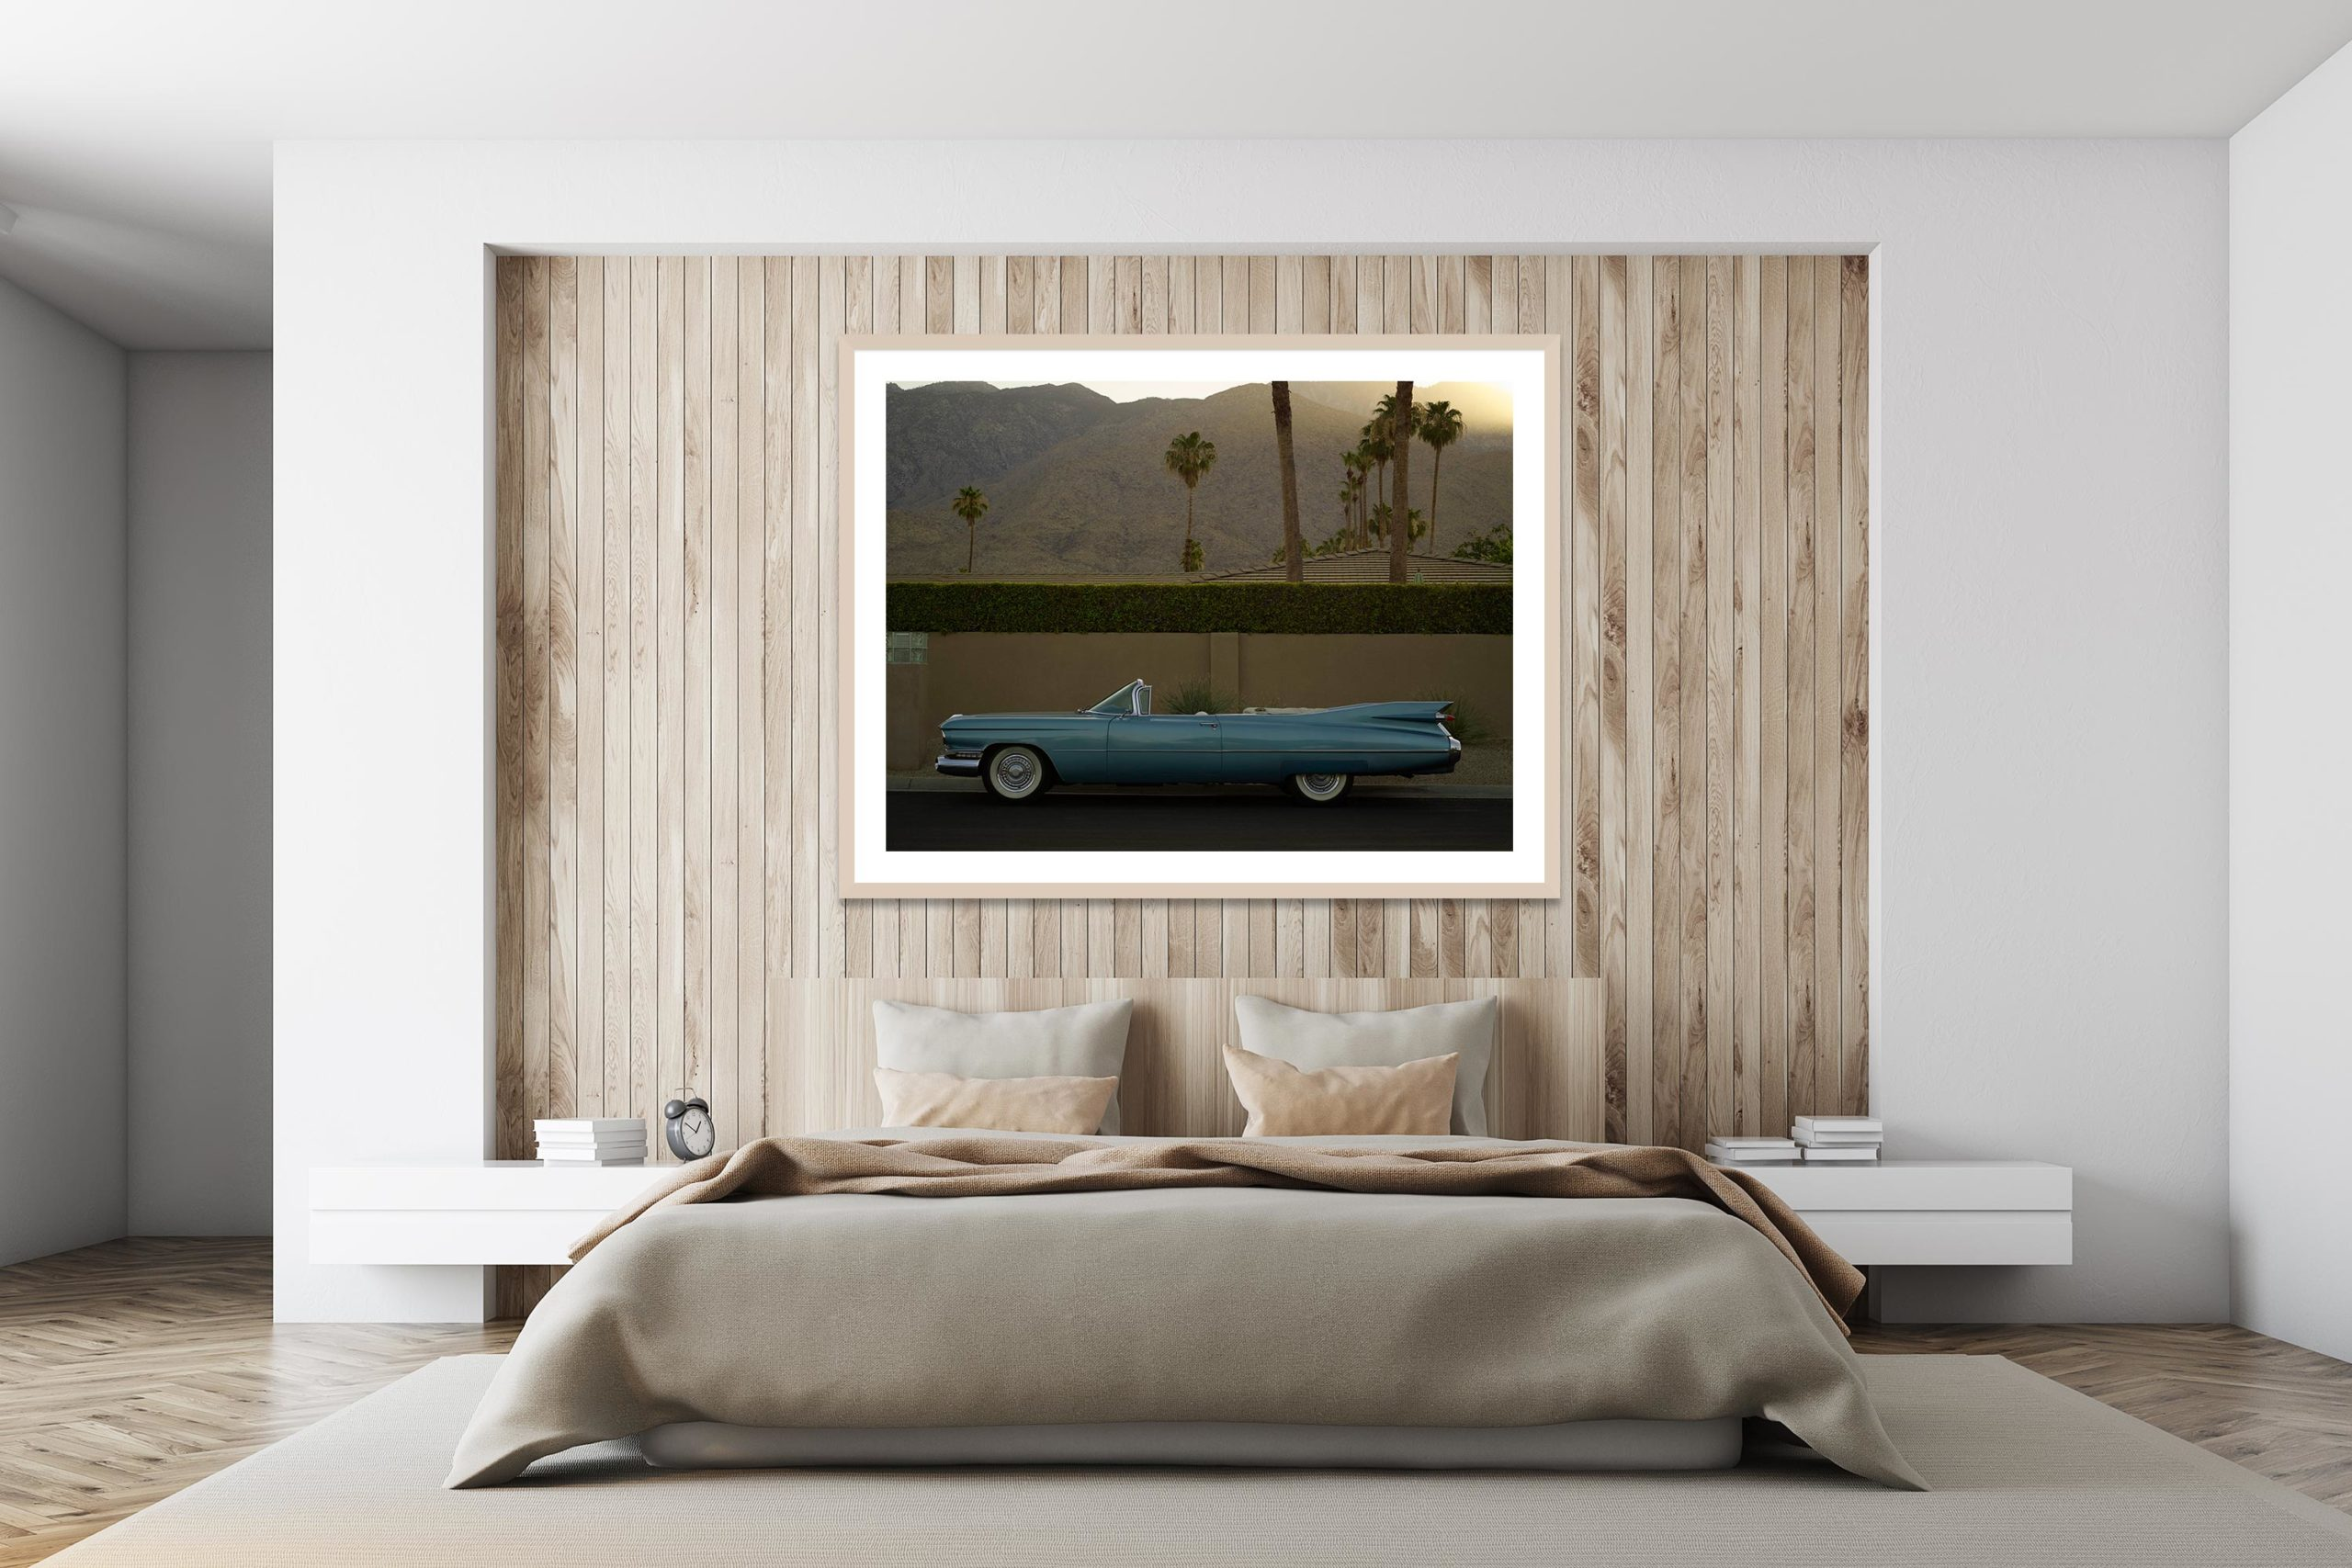 Sky Blue Cadillac - Timber Frame - I Heart Palm Springs Collection - Fine Art Photography by Toby Dixon